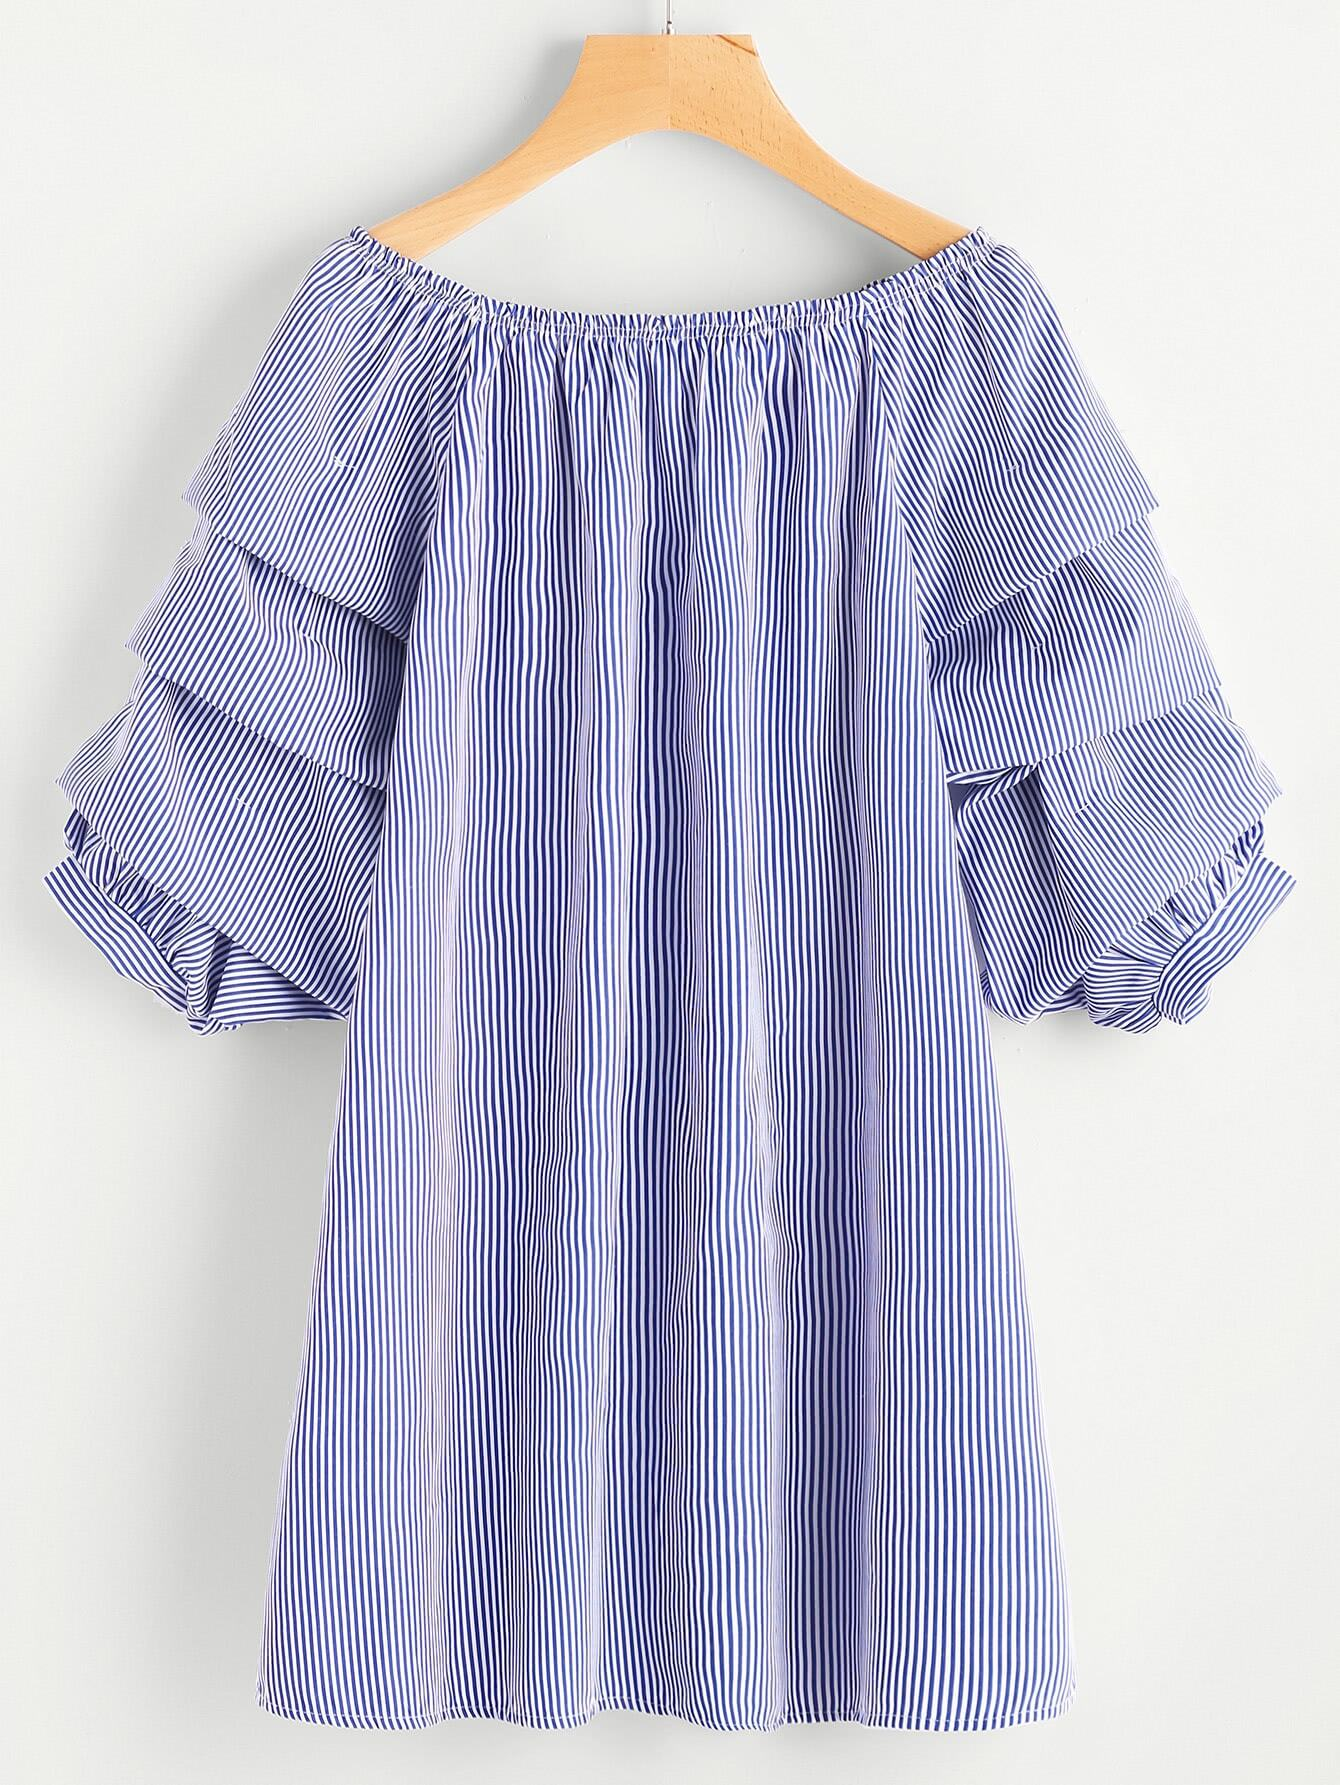 Boat Neckline Ruched Sleeve Vertical Striped Dress boat neckline striped blouse with buttons